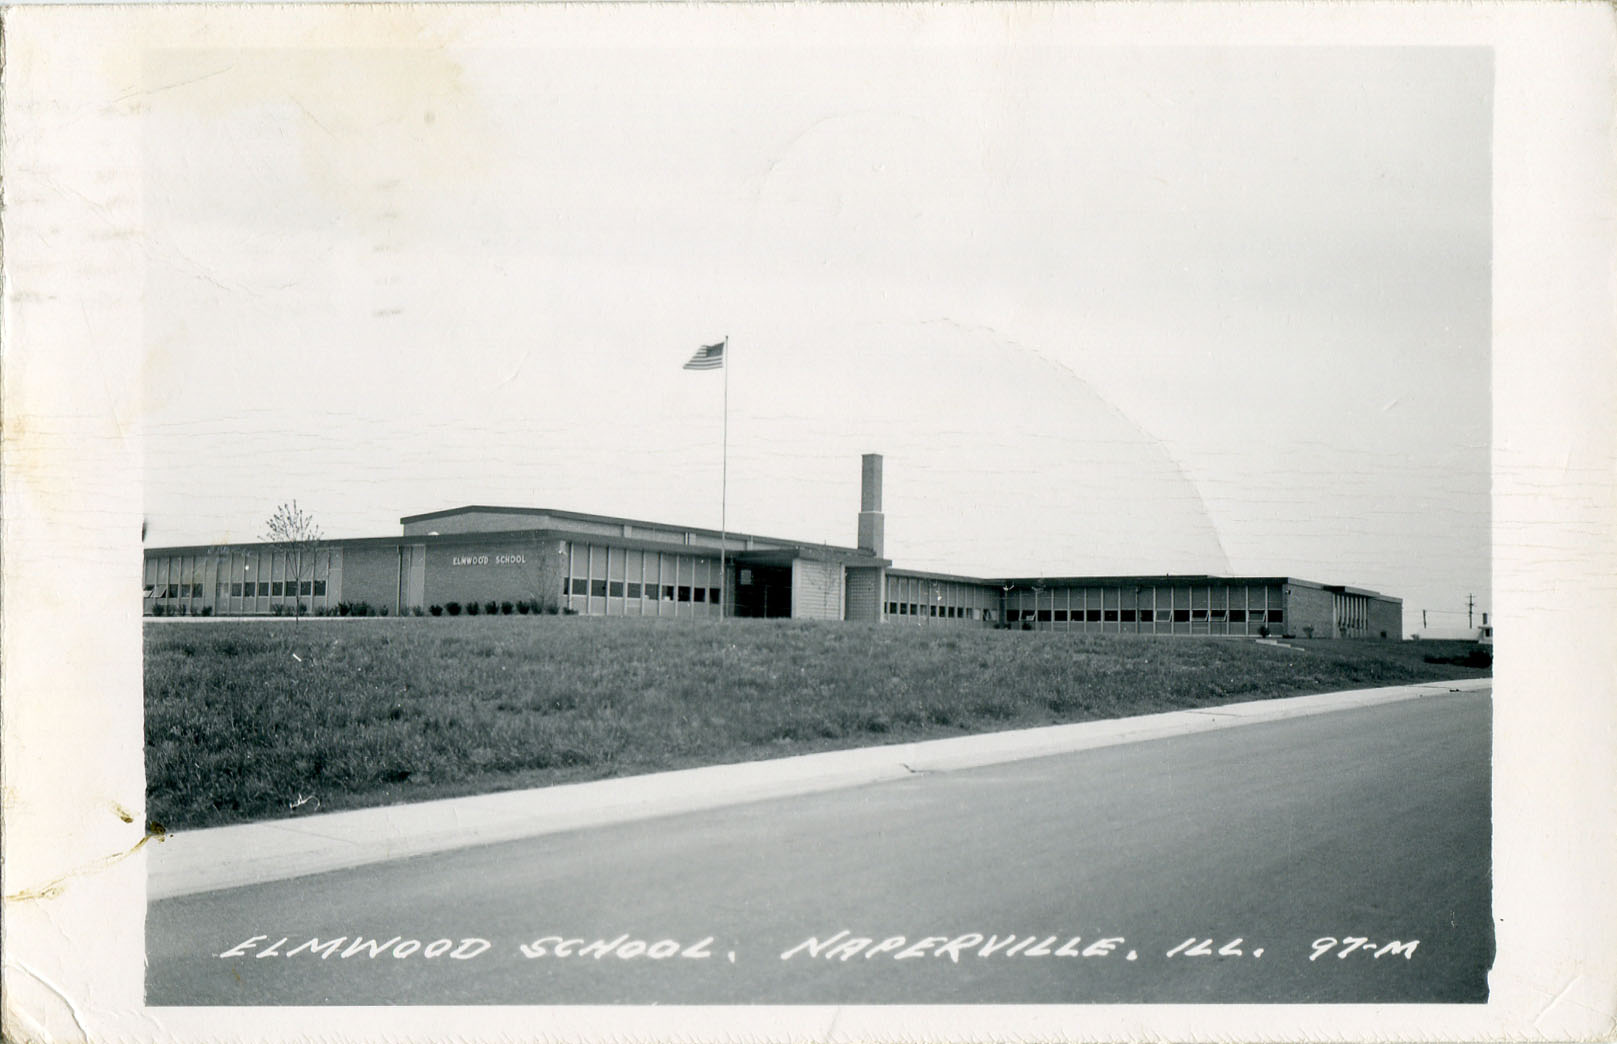 Elmwood School postcard